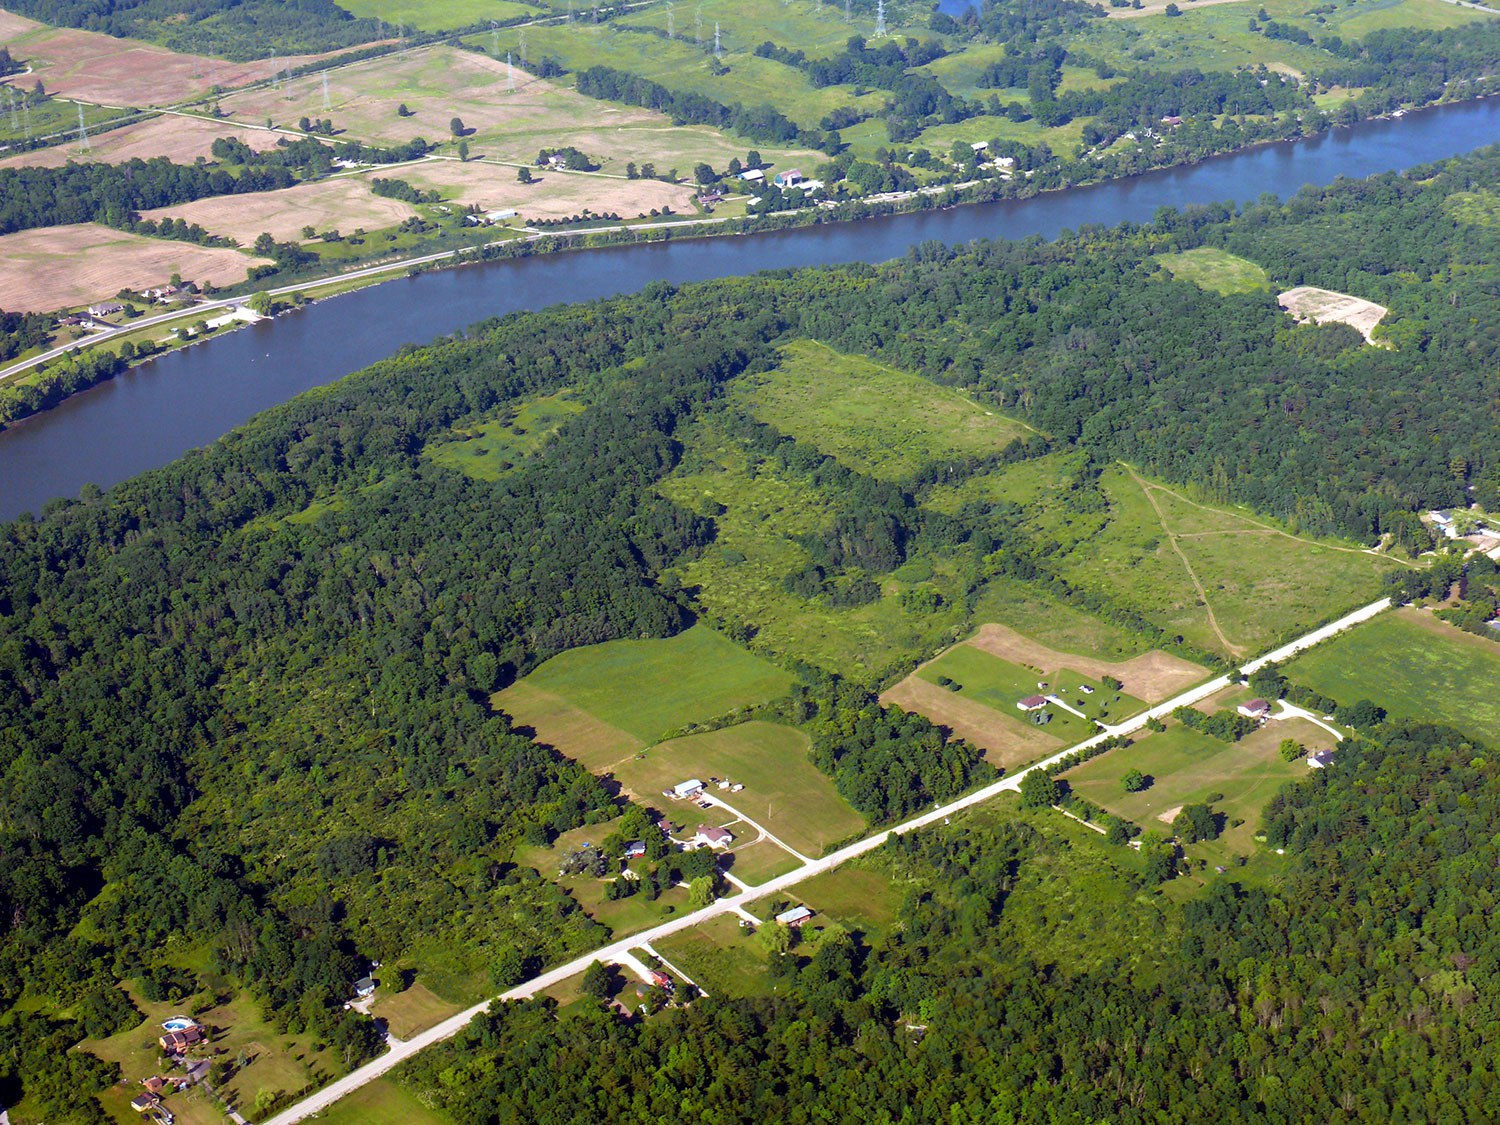 Aerial view of Grand River. Photo: Ann and Peter Macdonald